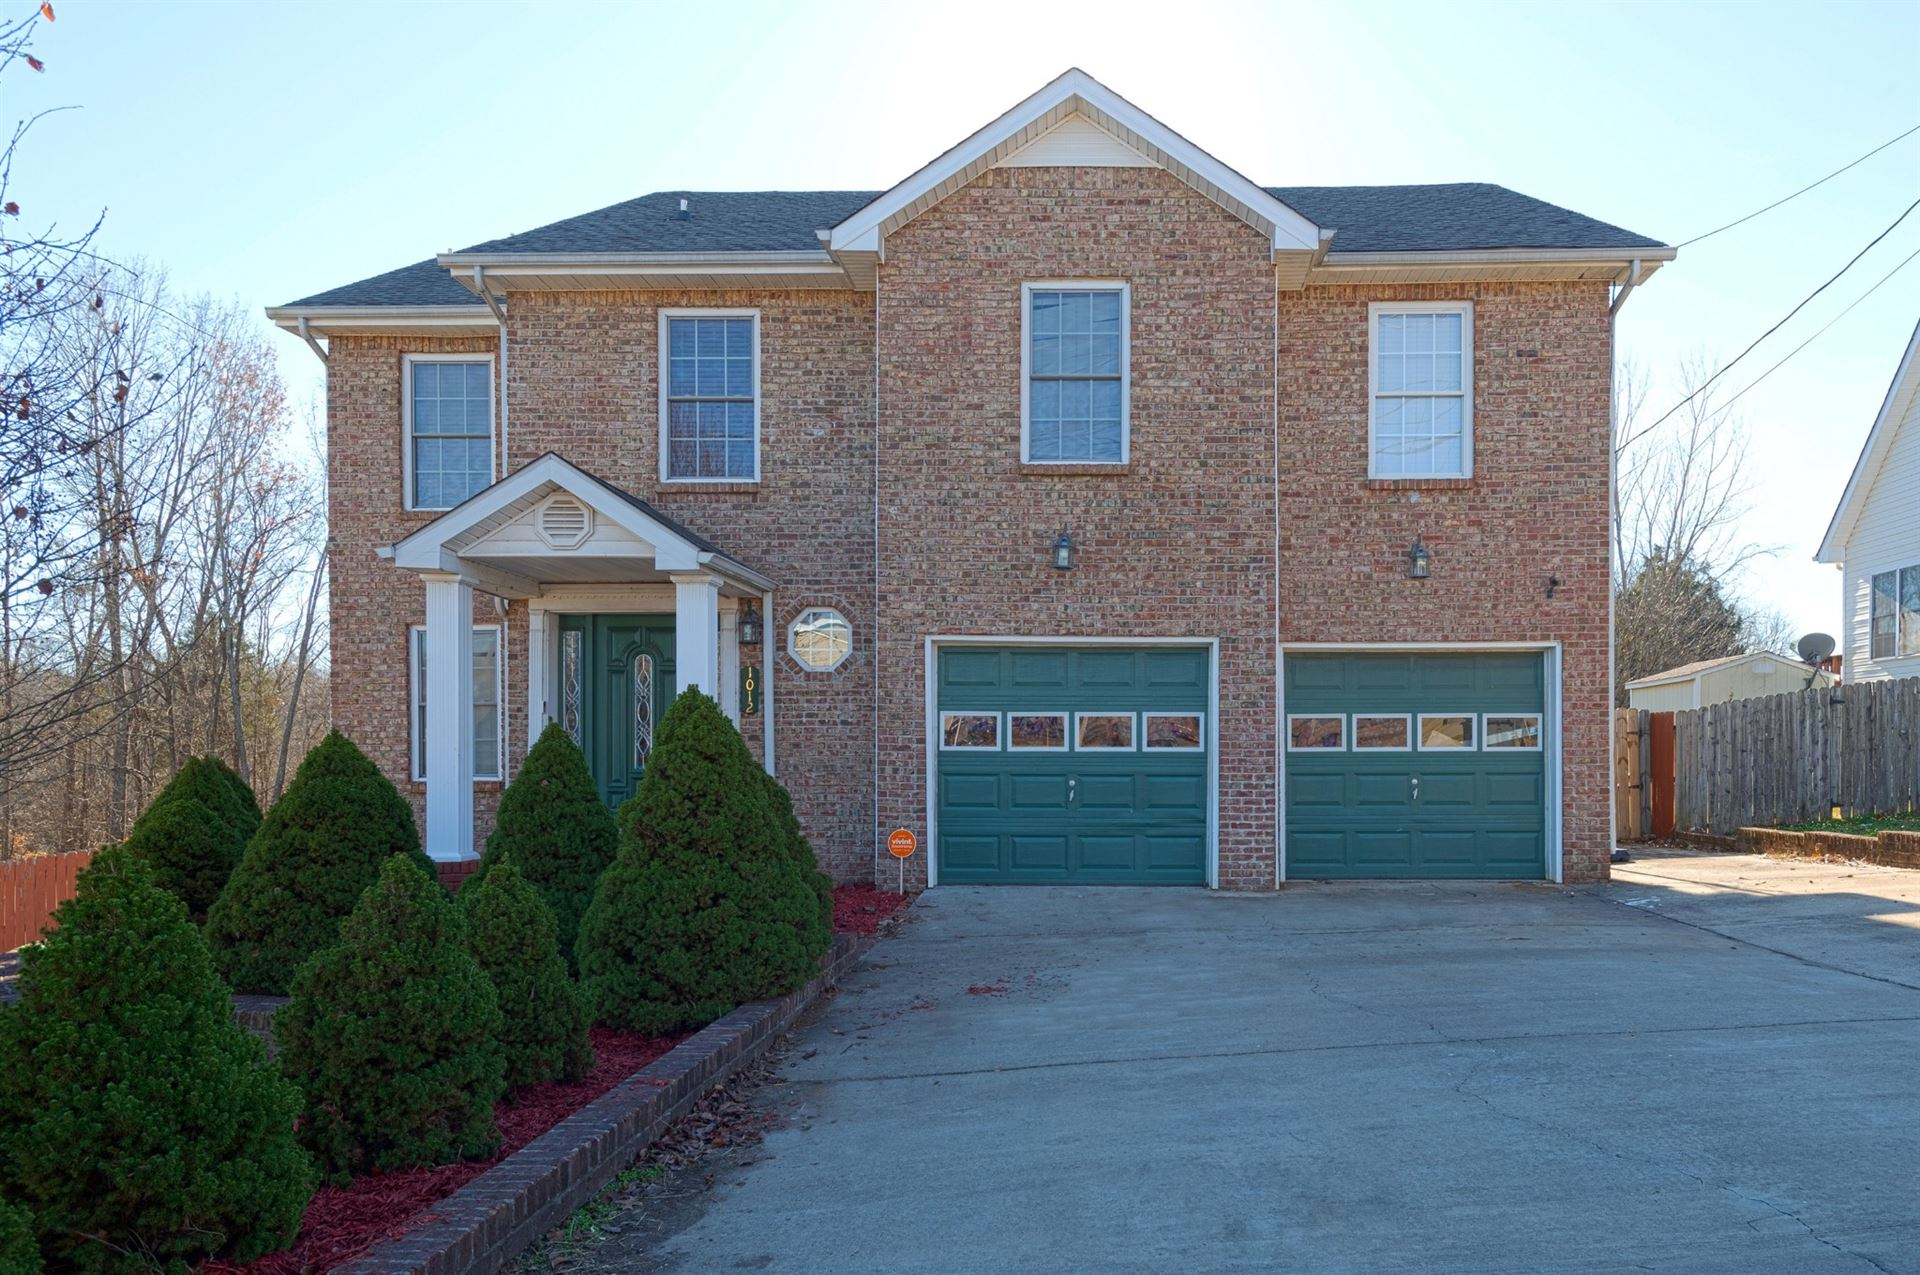 1012 Garfield Way, Clarksville, TN 37042 - MLS#: 2212950